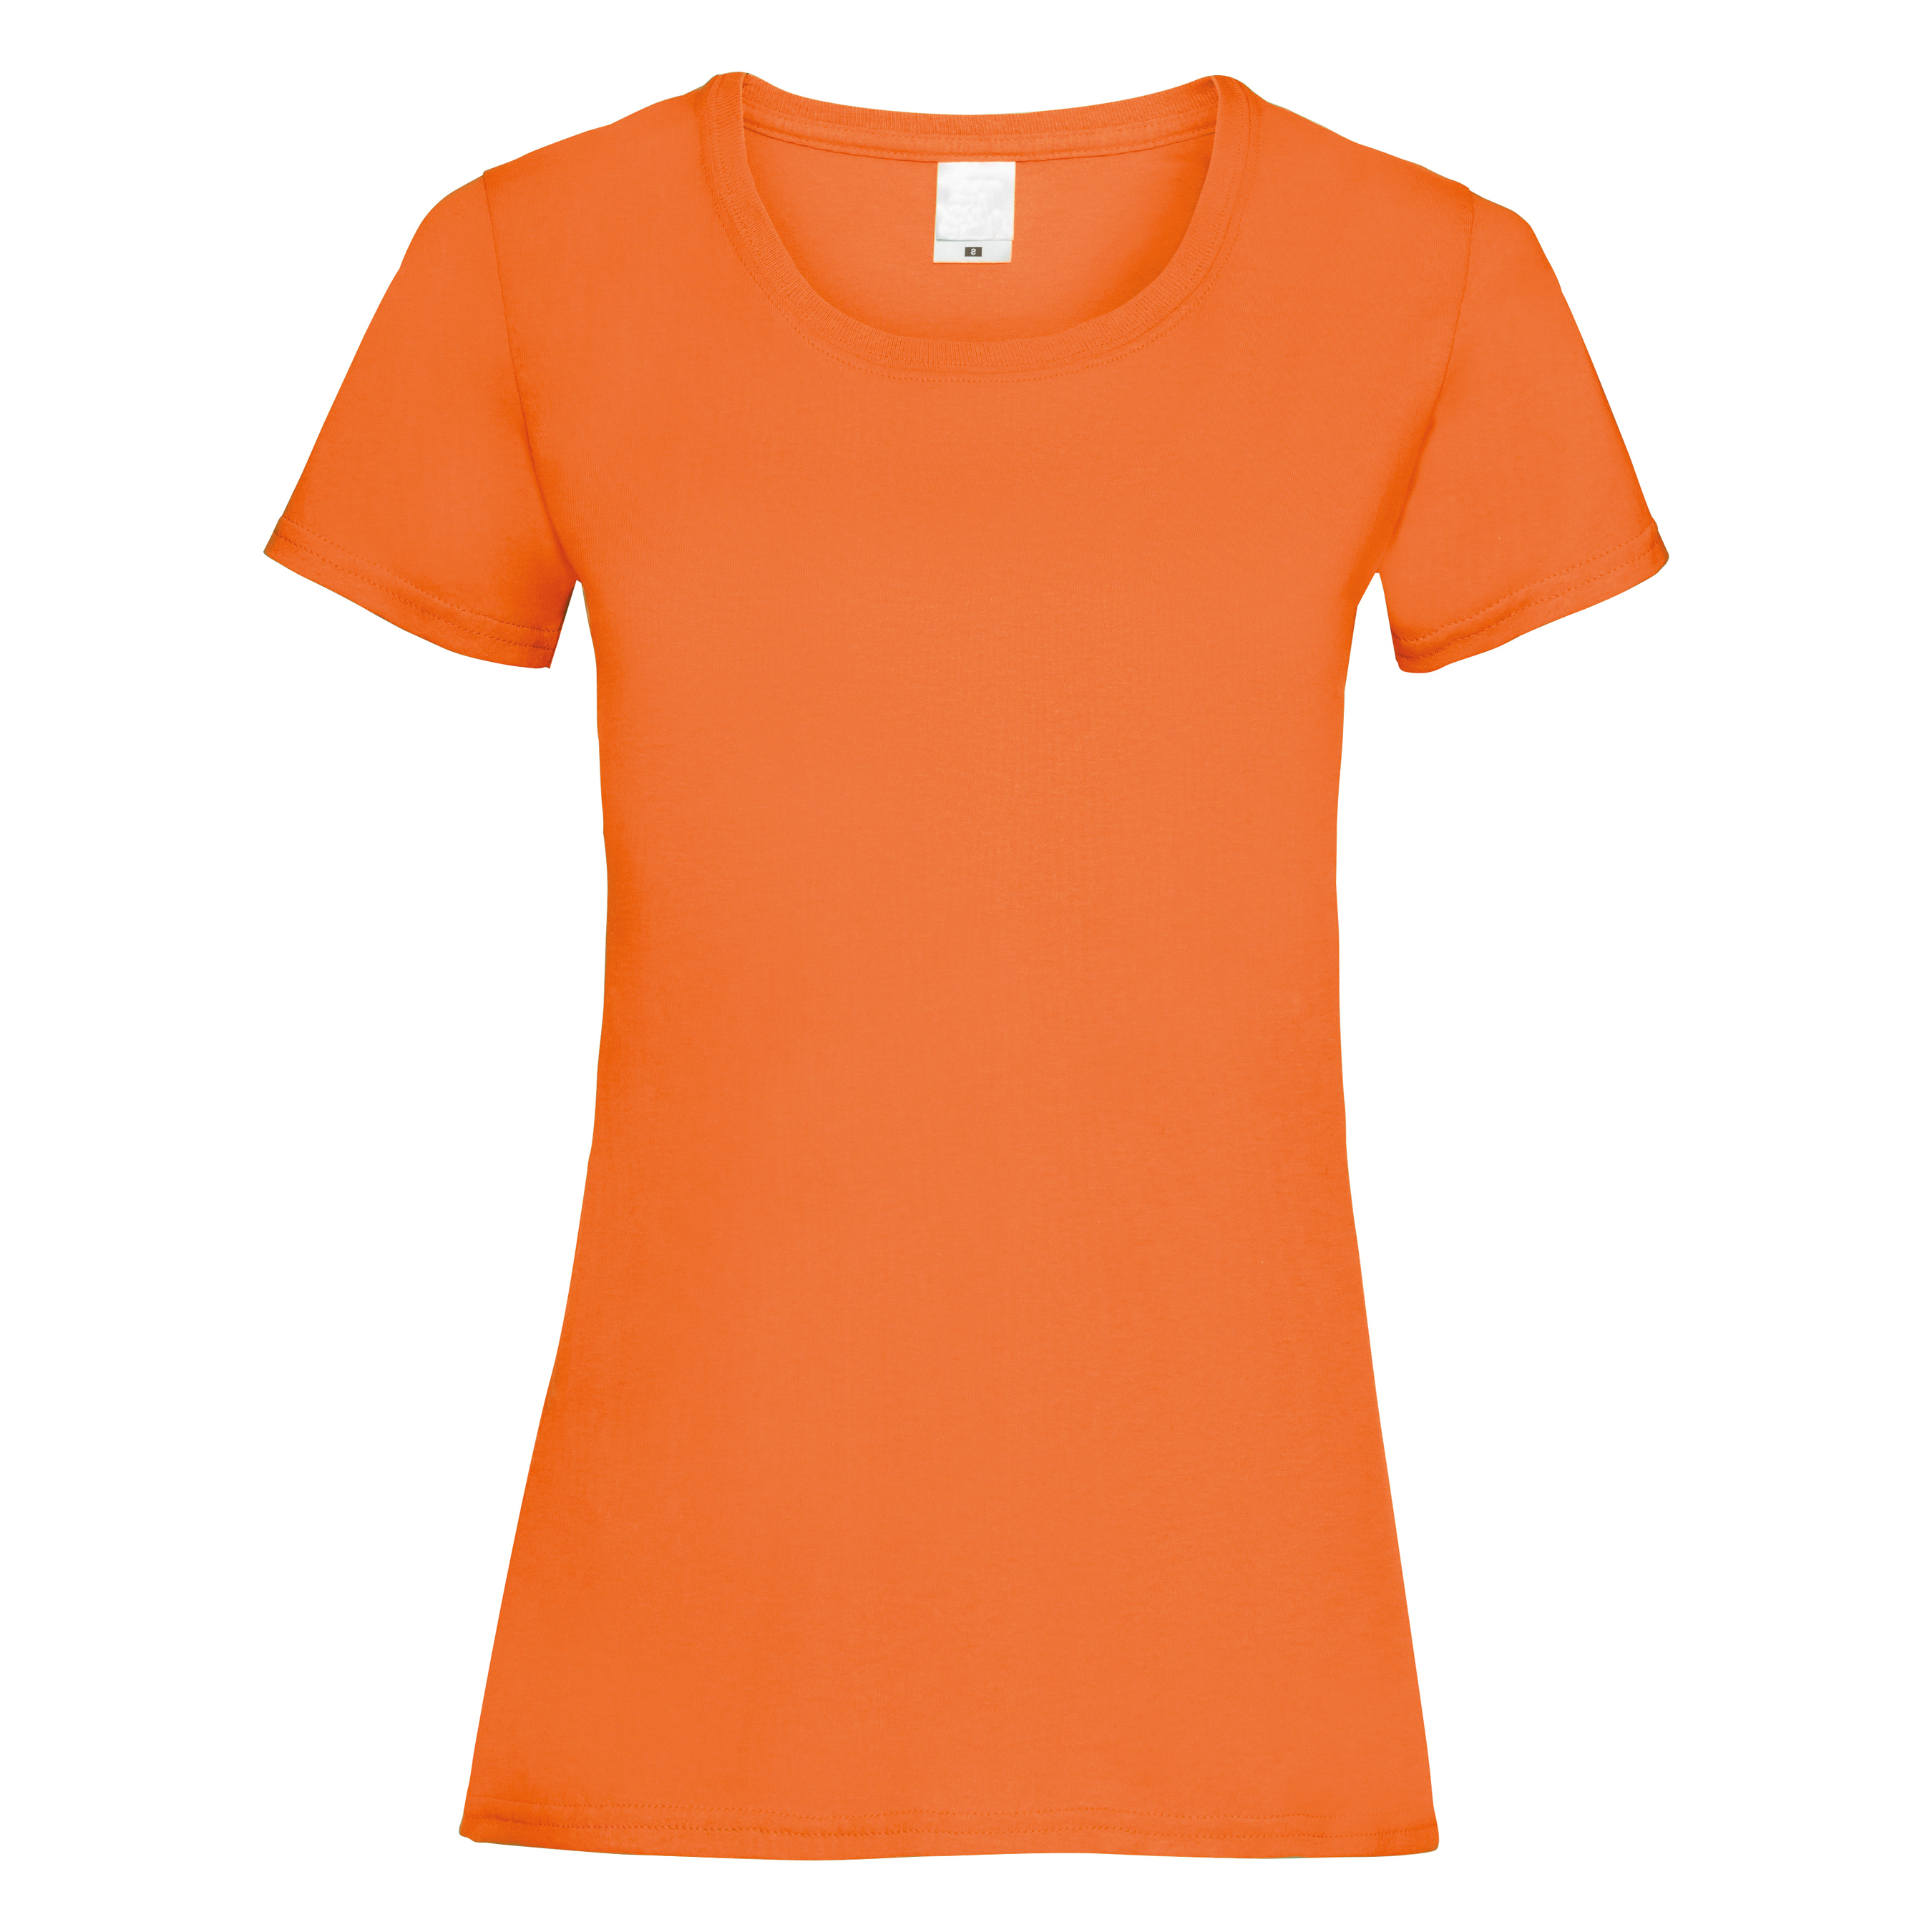 Womens/Ladies Value Fitted Short Sleeve Casual T-Shirt (Large) (Bright Orange)